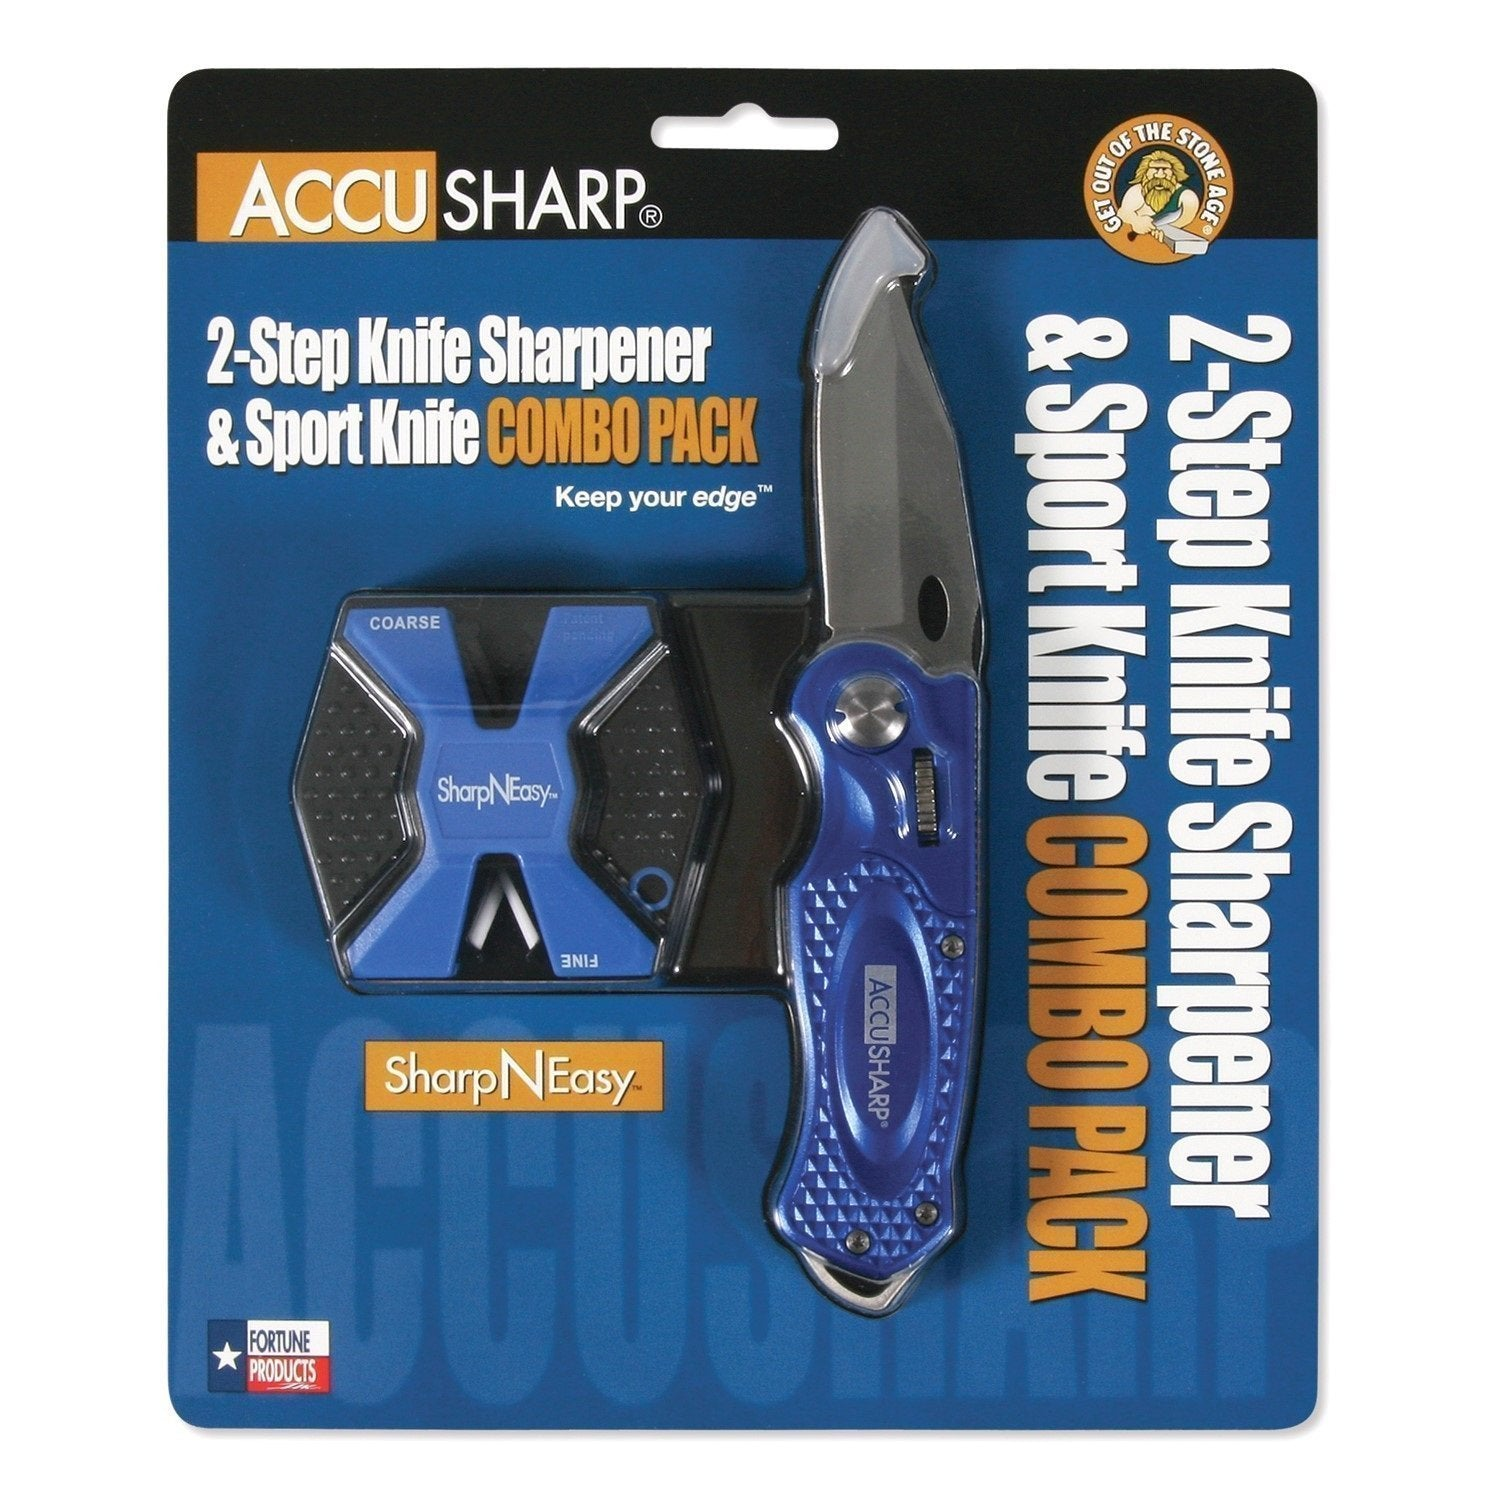 Accusharp SharpNEasy 2-Step Sharpener and Sport Knife - Blue-Sharpeners-Tactical Gear Australia